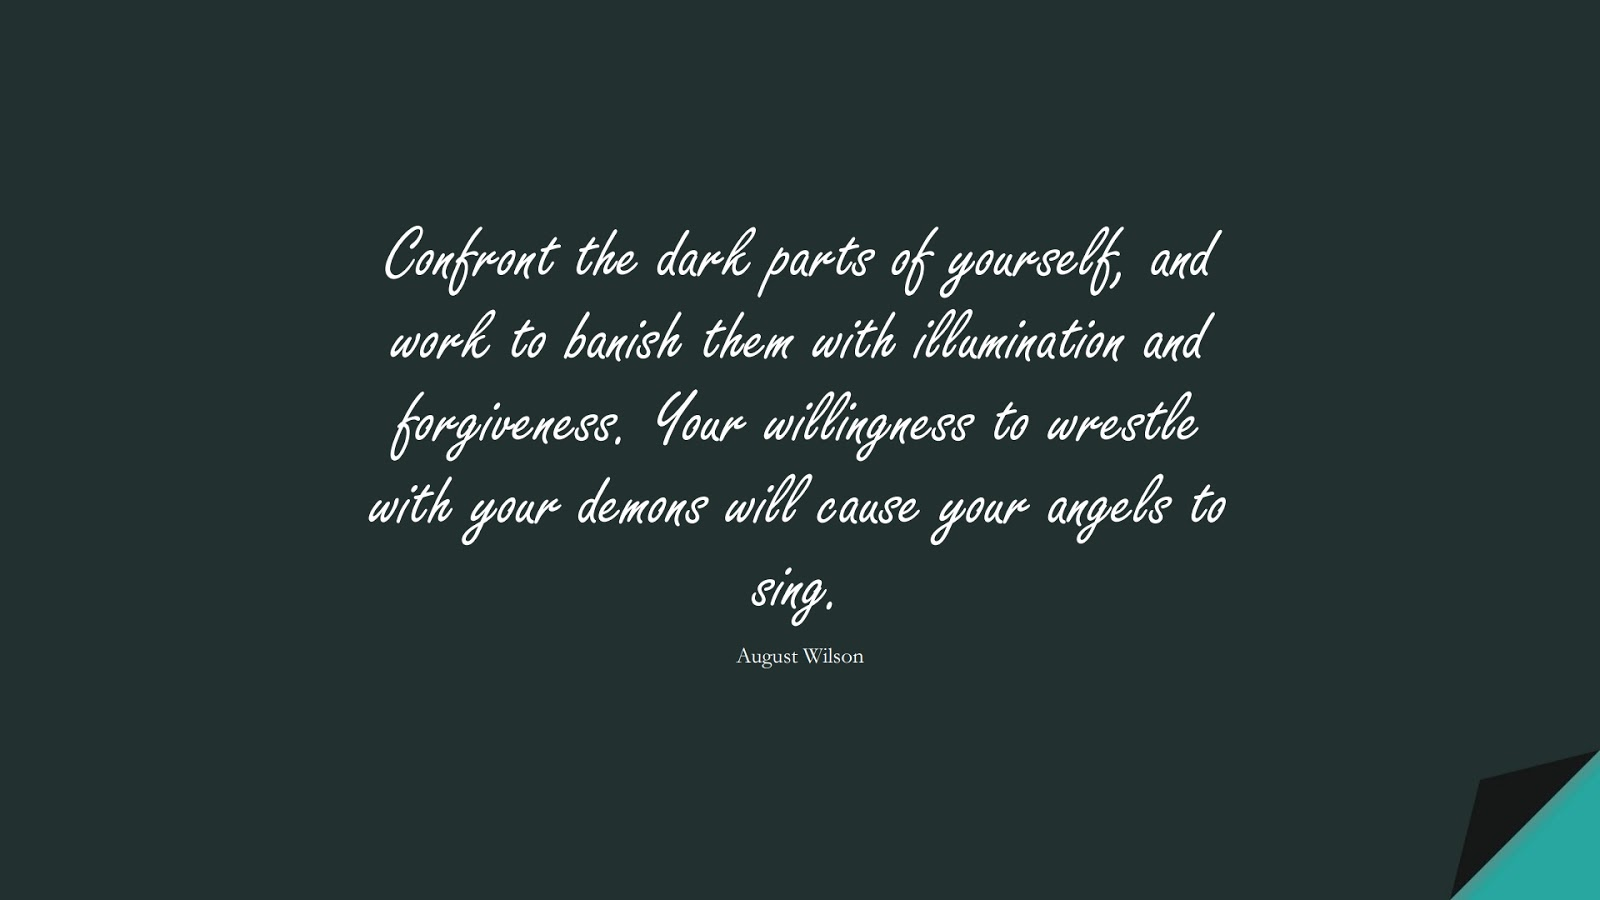 Confront the dark parts of yourself, and work to banish them with illumination and forgiveness. Your willingness to wrestle with your demons will cause your angels to sing. (August Wilson);  #SelfEsteemQuotes